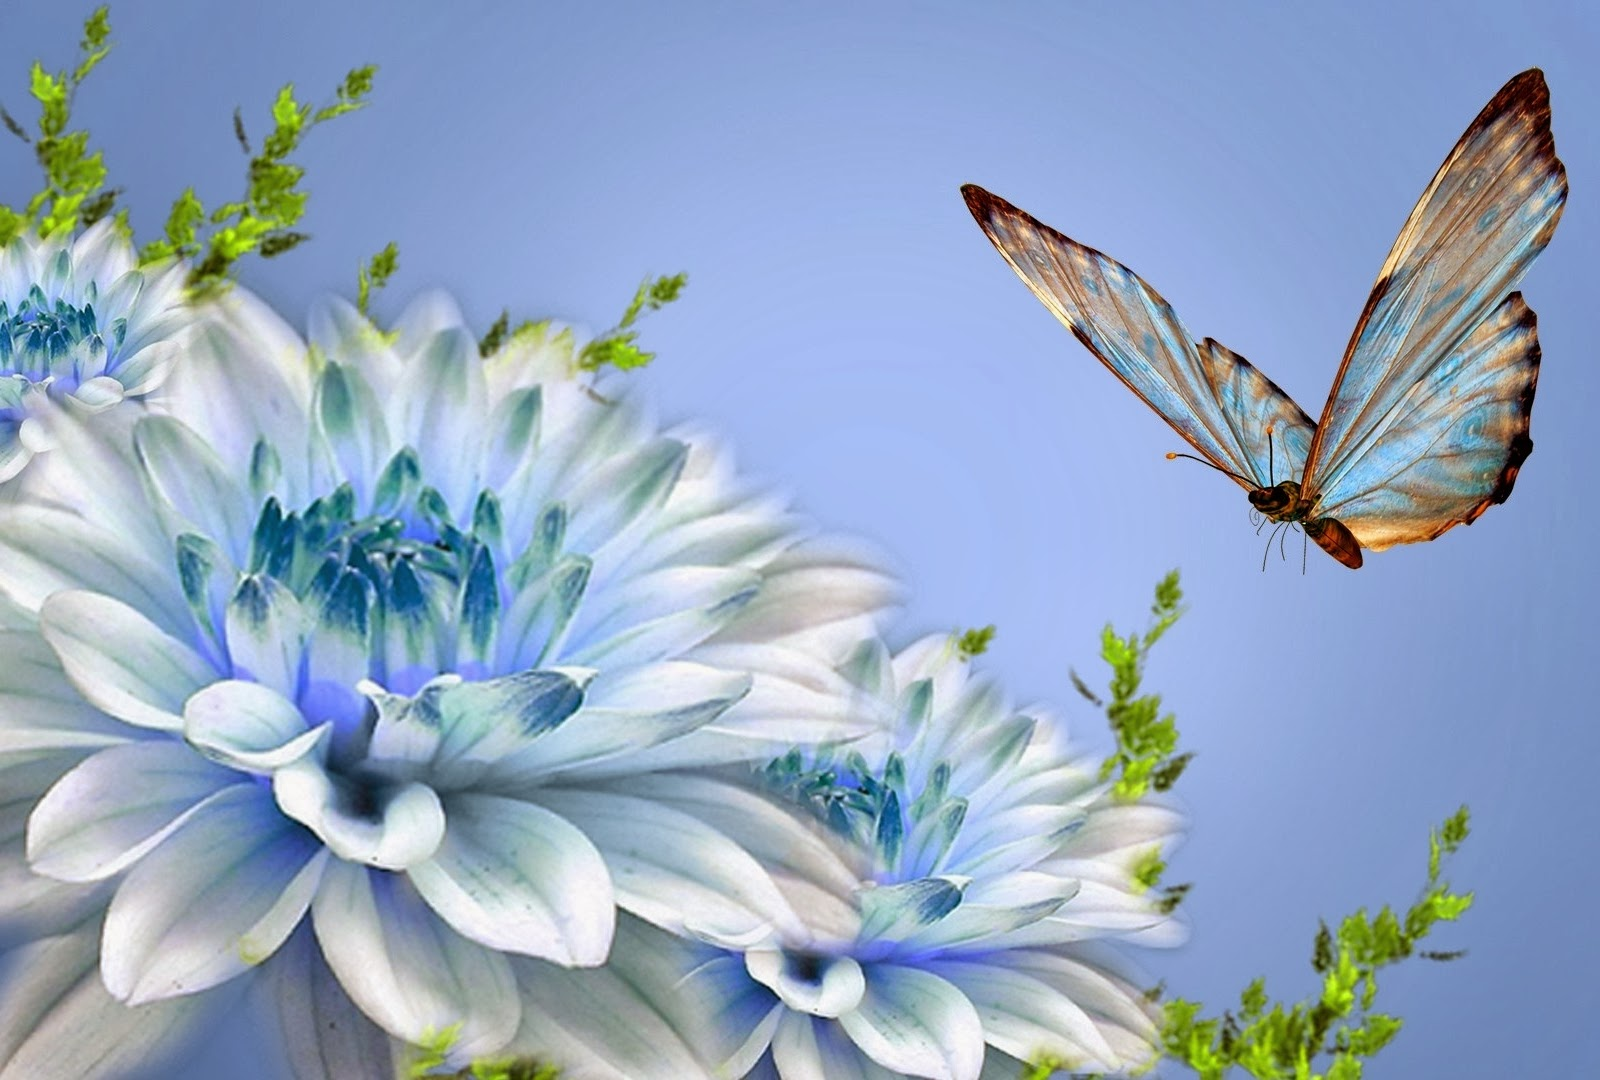 Butterfly hd wallpapers HD WALLPAPERS 1600x1080